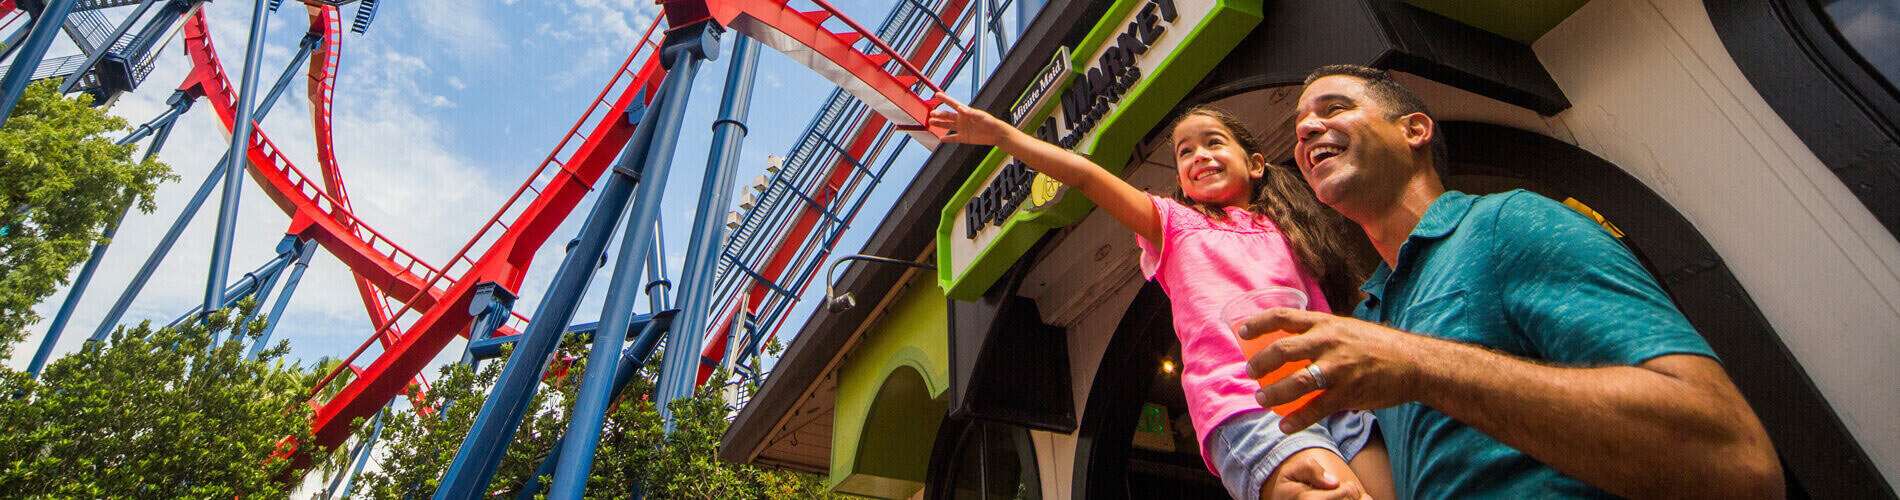 Make your day at Busch Gardens Tampa Bay a breeze with parking, stroller rentals, wheelchair rentals and more